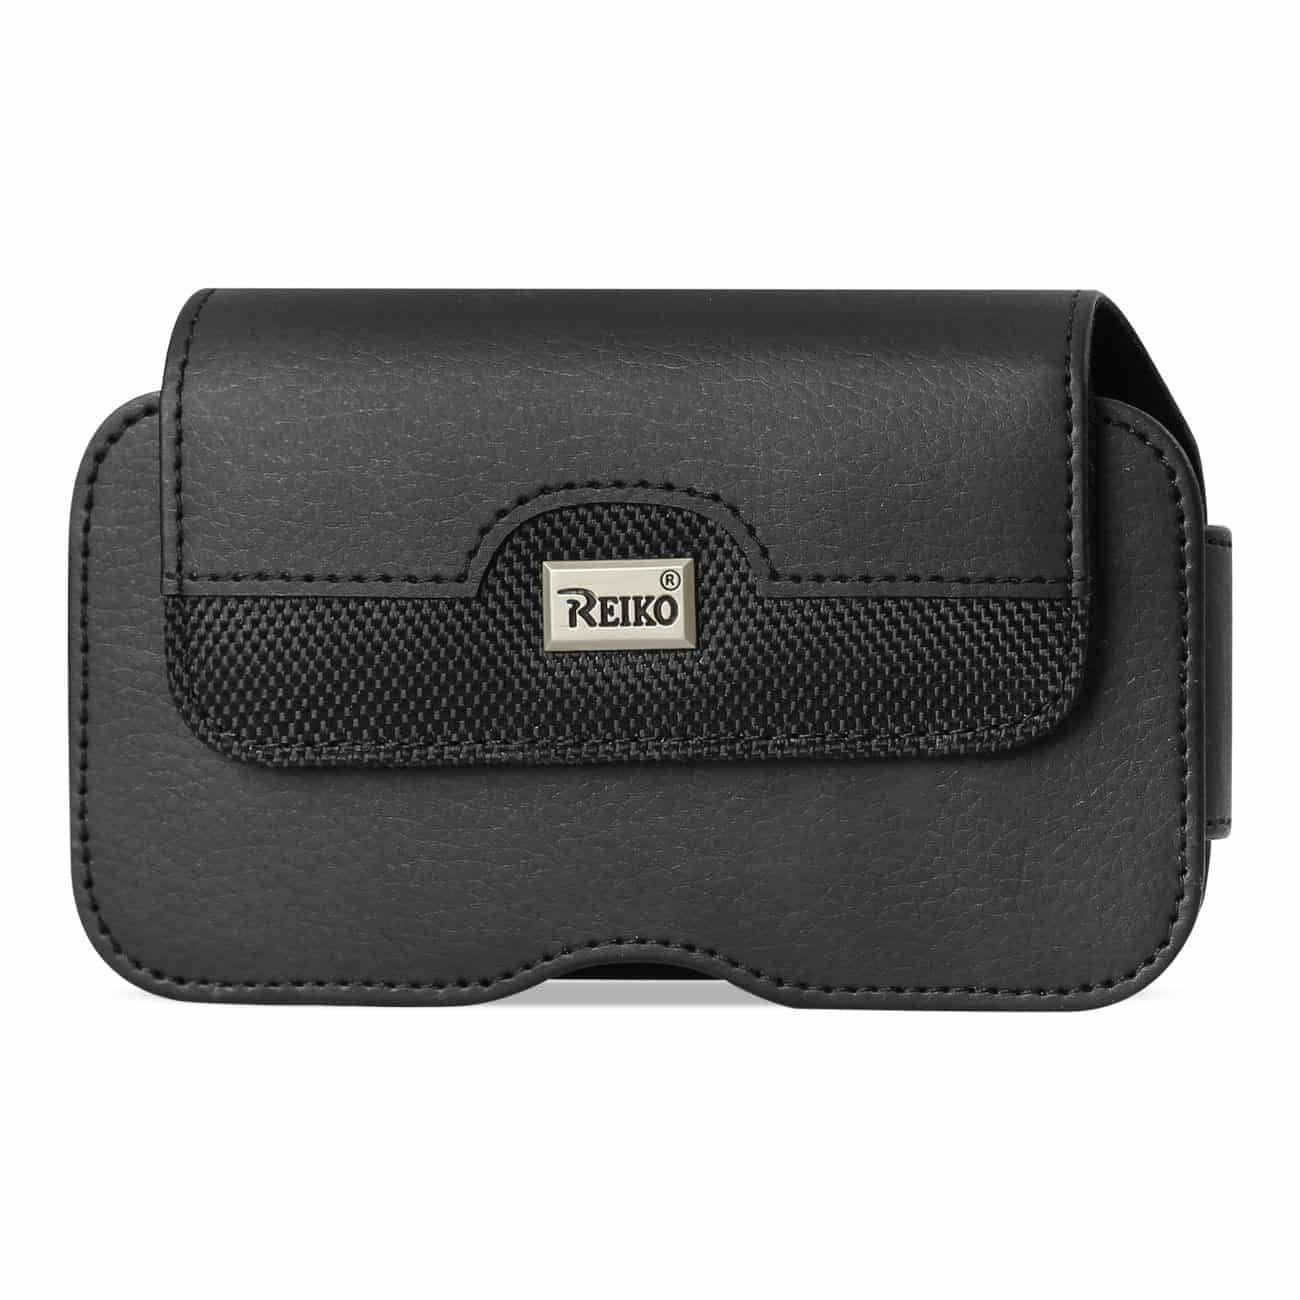 Horizontal Leather Pouch With Metal Logo In Black (7.0X3.9X0.7 Inches)